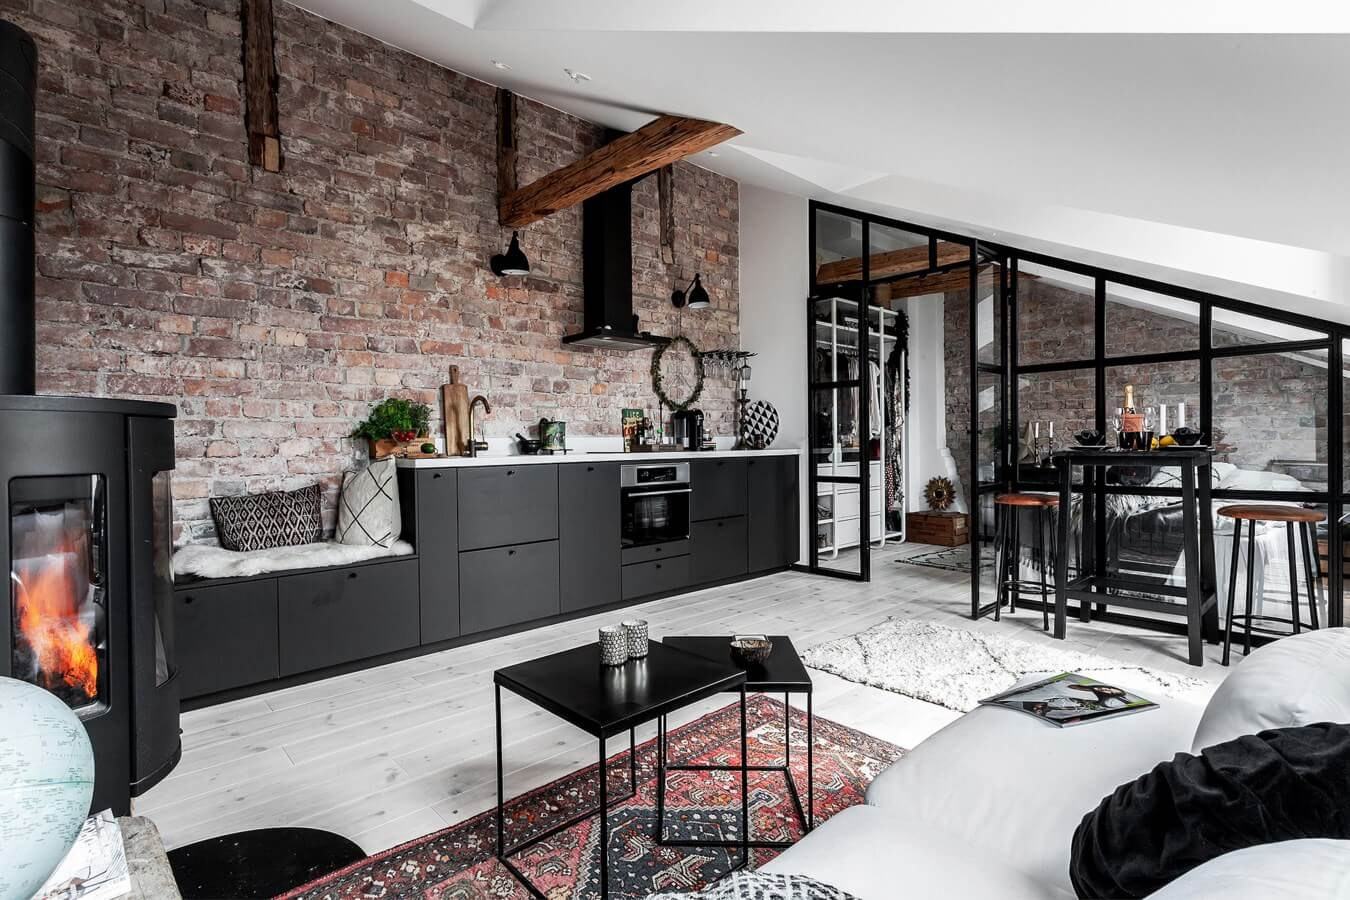 An Industrial Look For A Small Attic Apartment in Stockholm